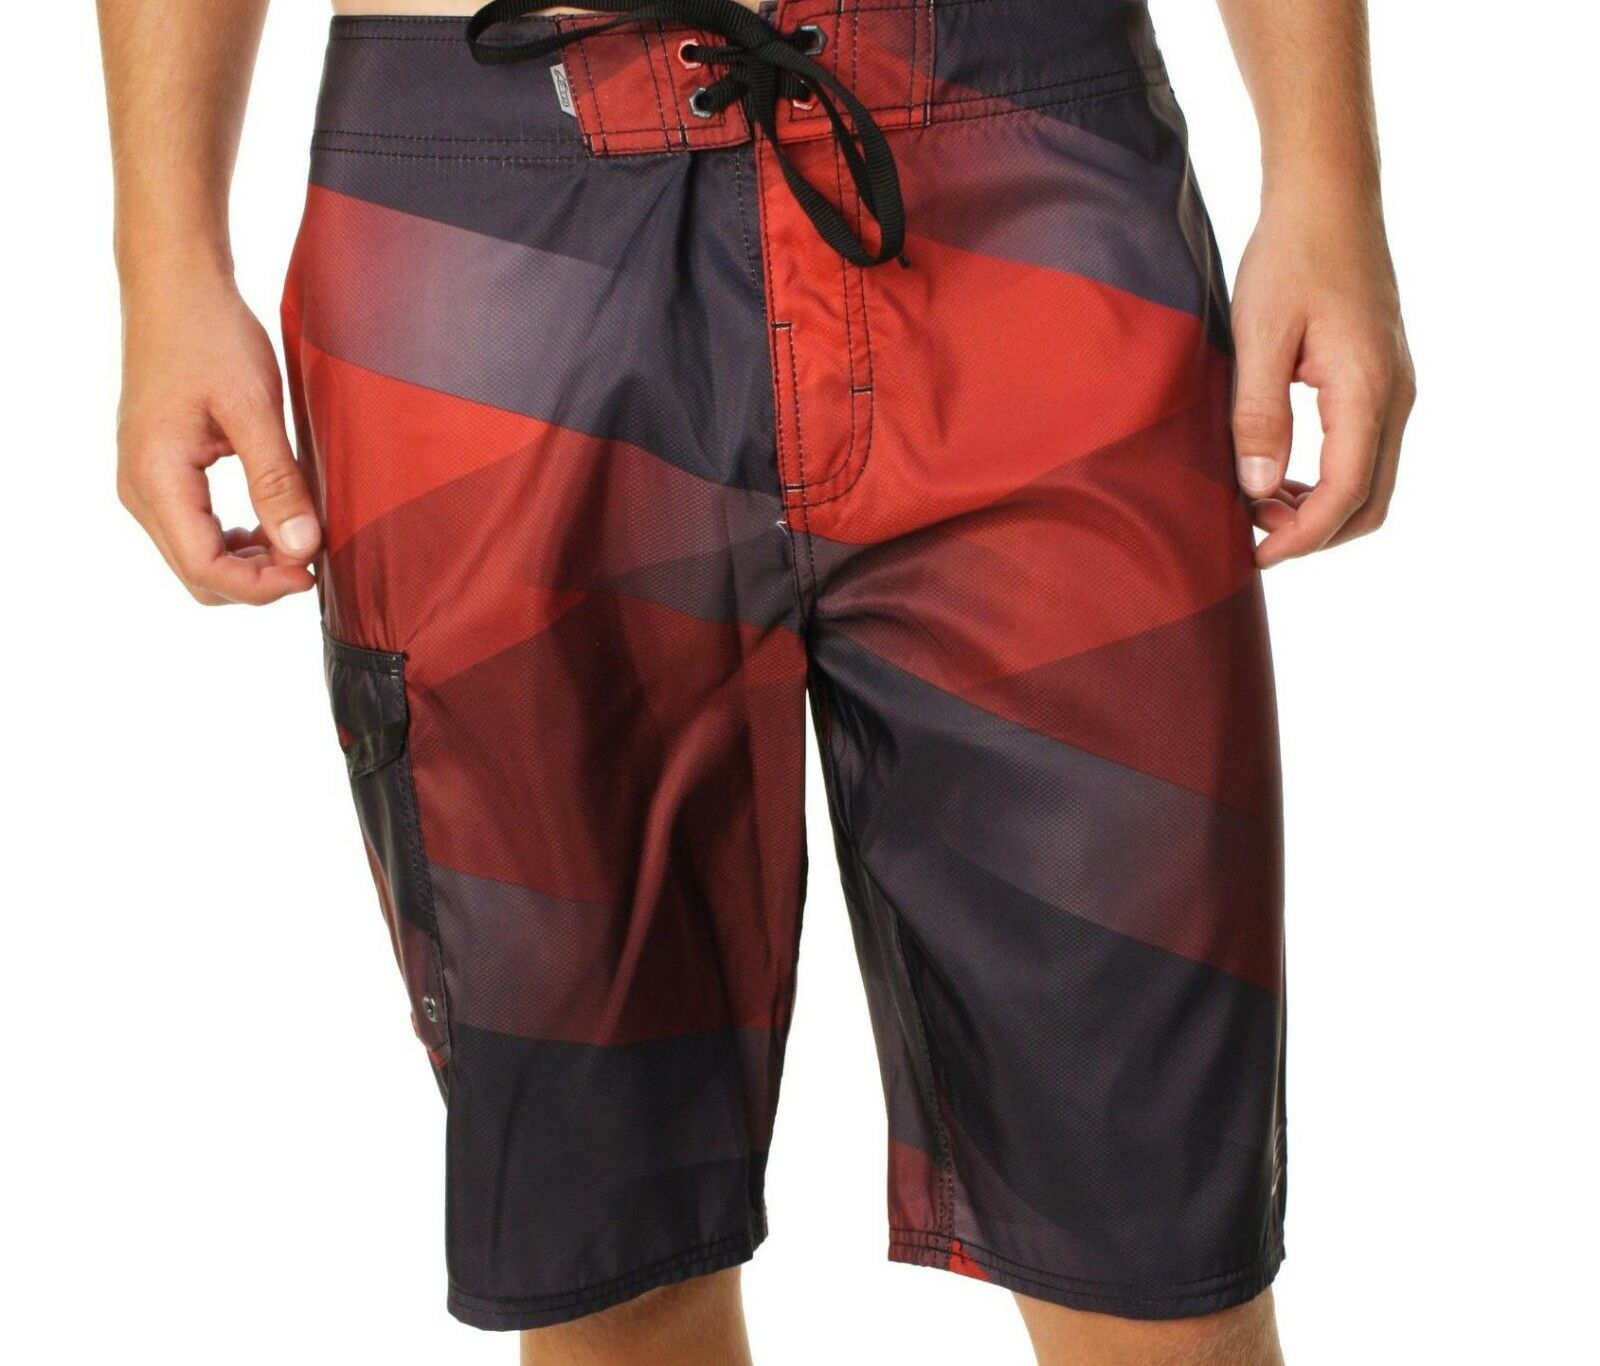 Alpinestars Minor Boardshorts (32) Red